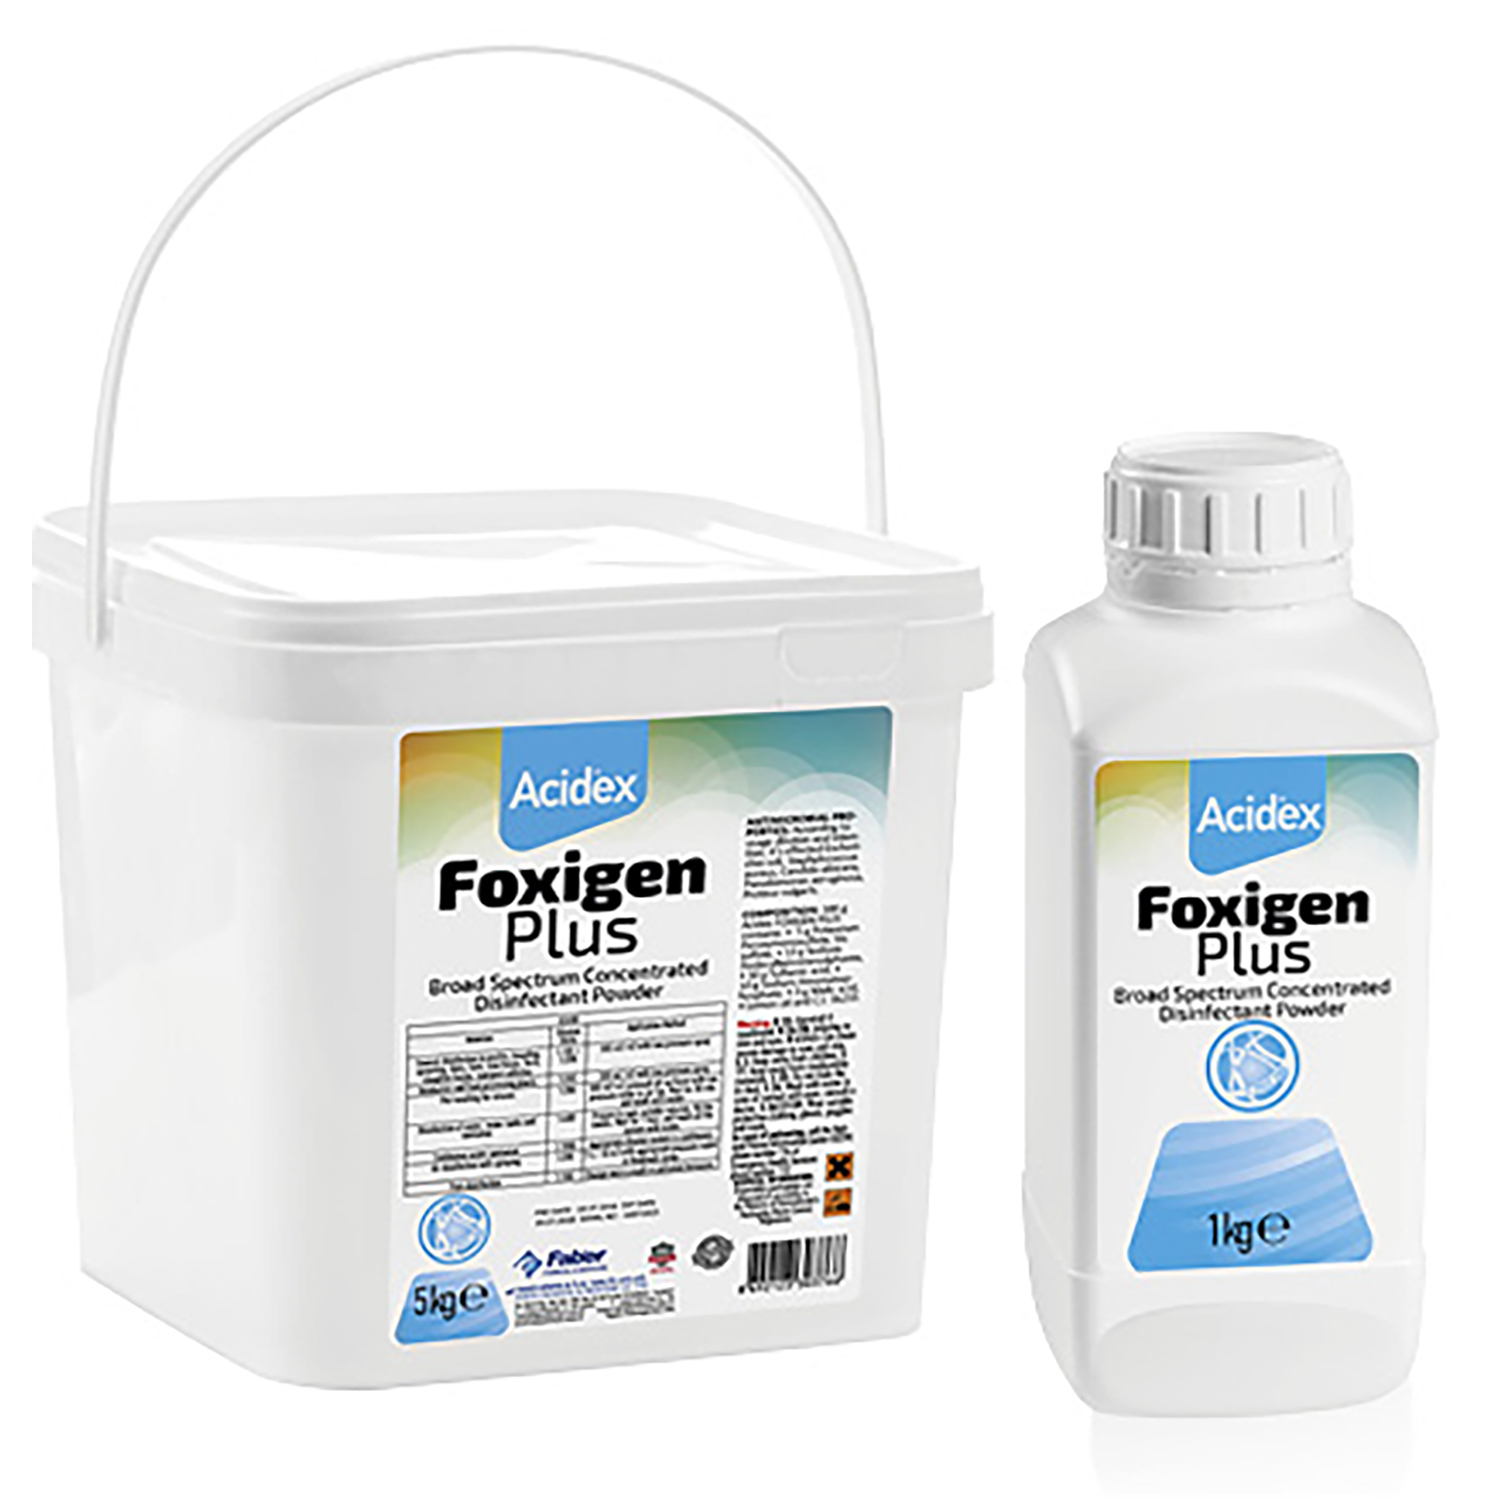 Acidex Foxigen Plus